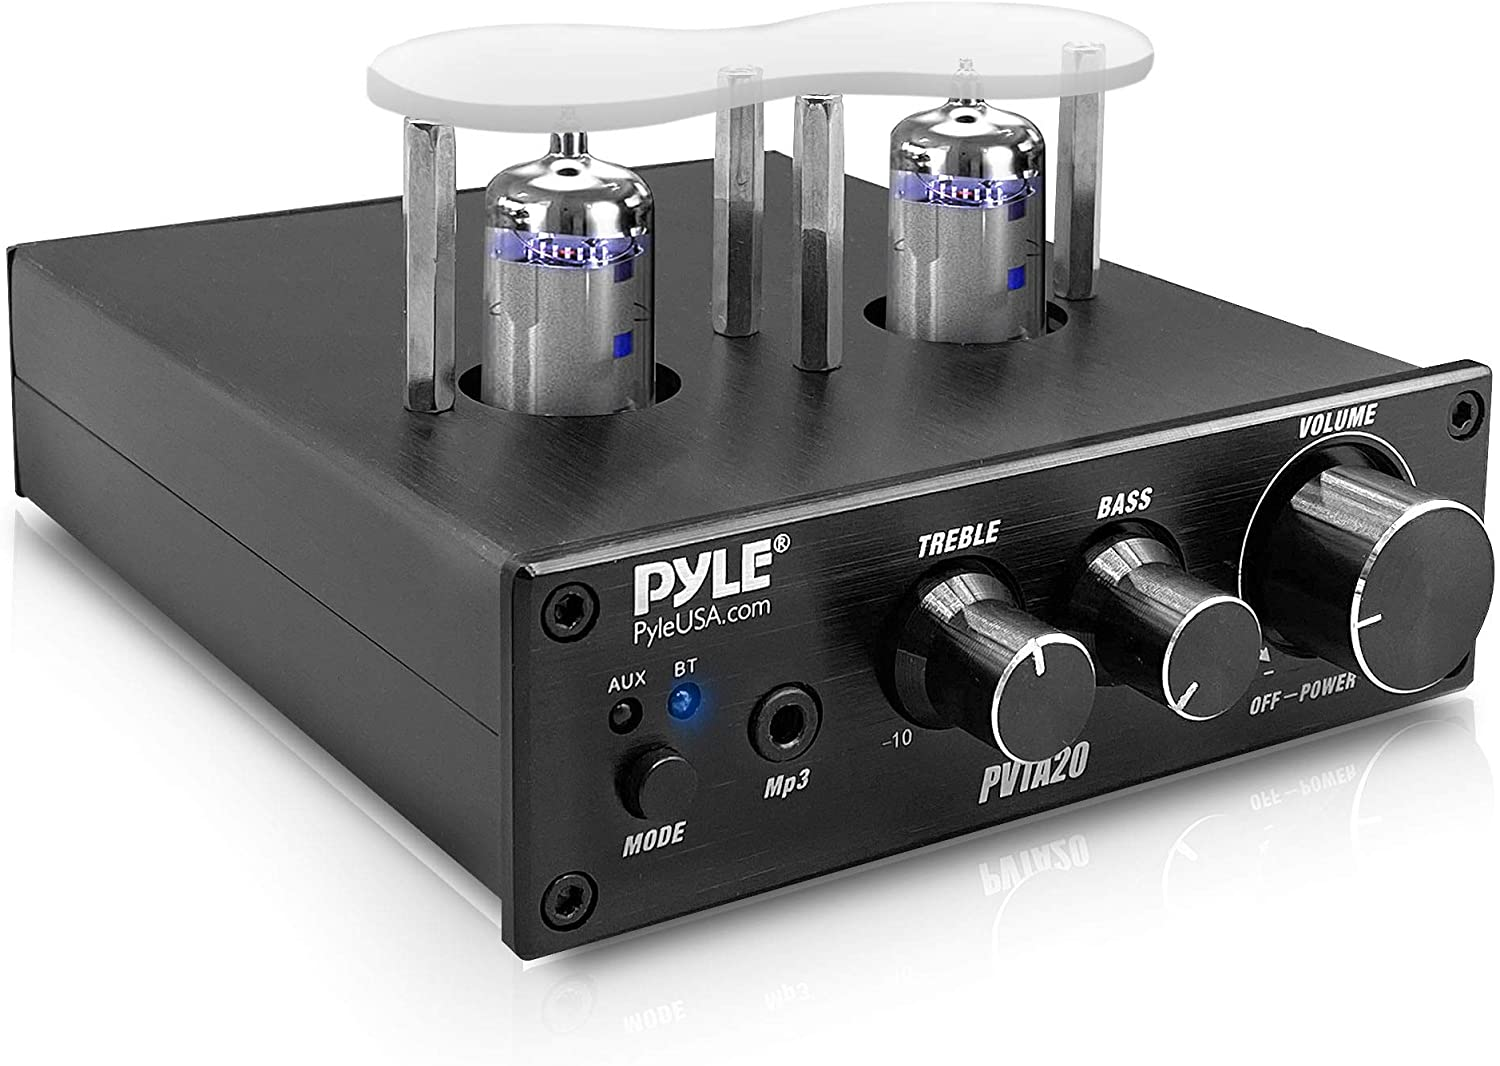 Bluetooth Tube Amplifier Stereo Receiver - 600W Home Audio Desktop Stereo Vacuum Tube Power Amplifier Receiver w/ 2 Vacuum Tubes, AUX/MP3/Microphone Inputs, Pure Copper Speaker Output - Pyle PVTA20